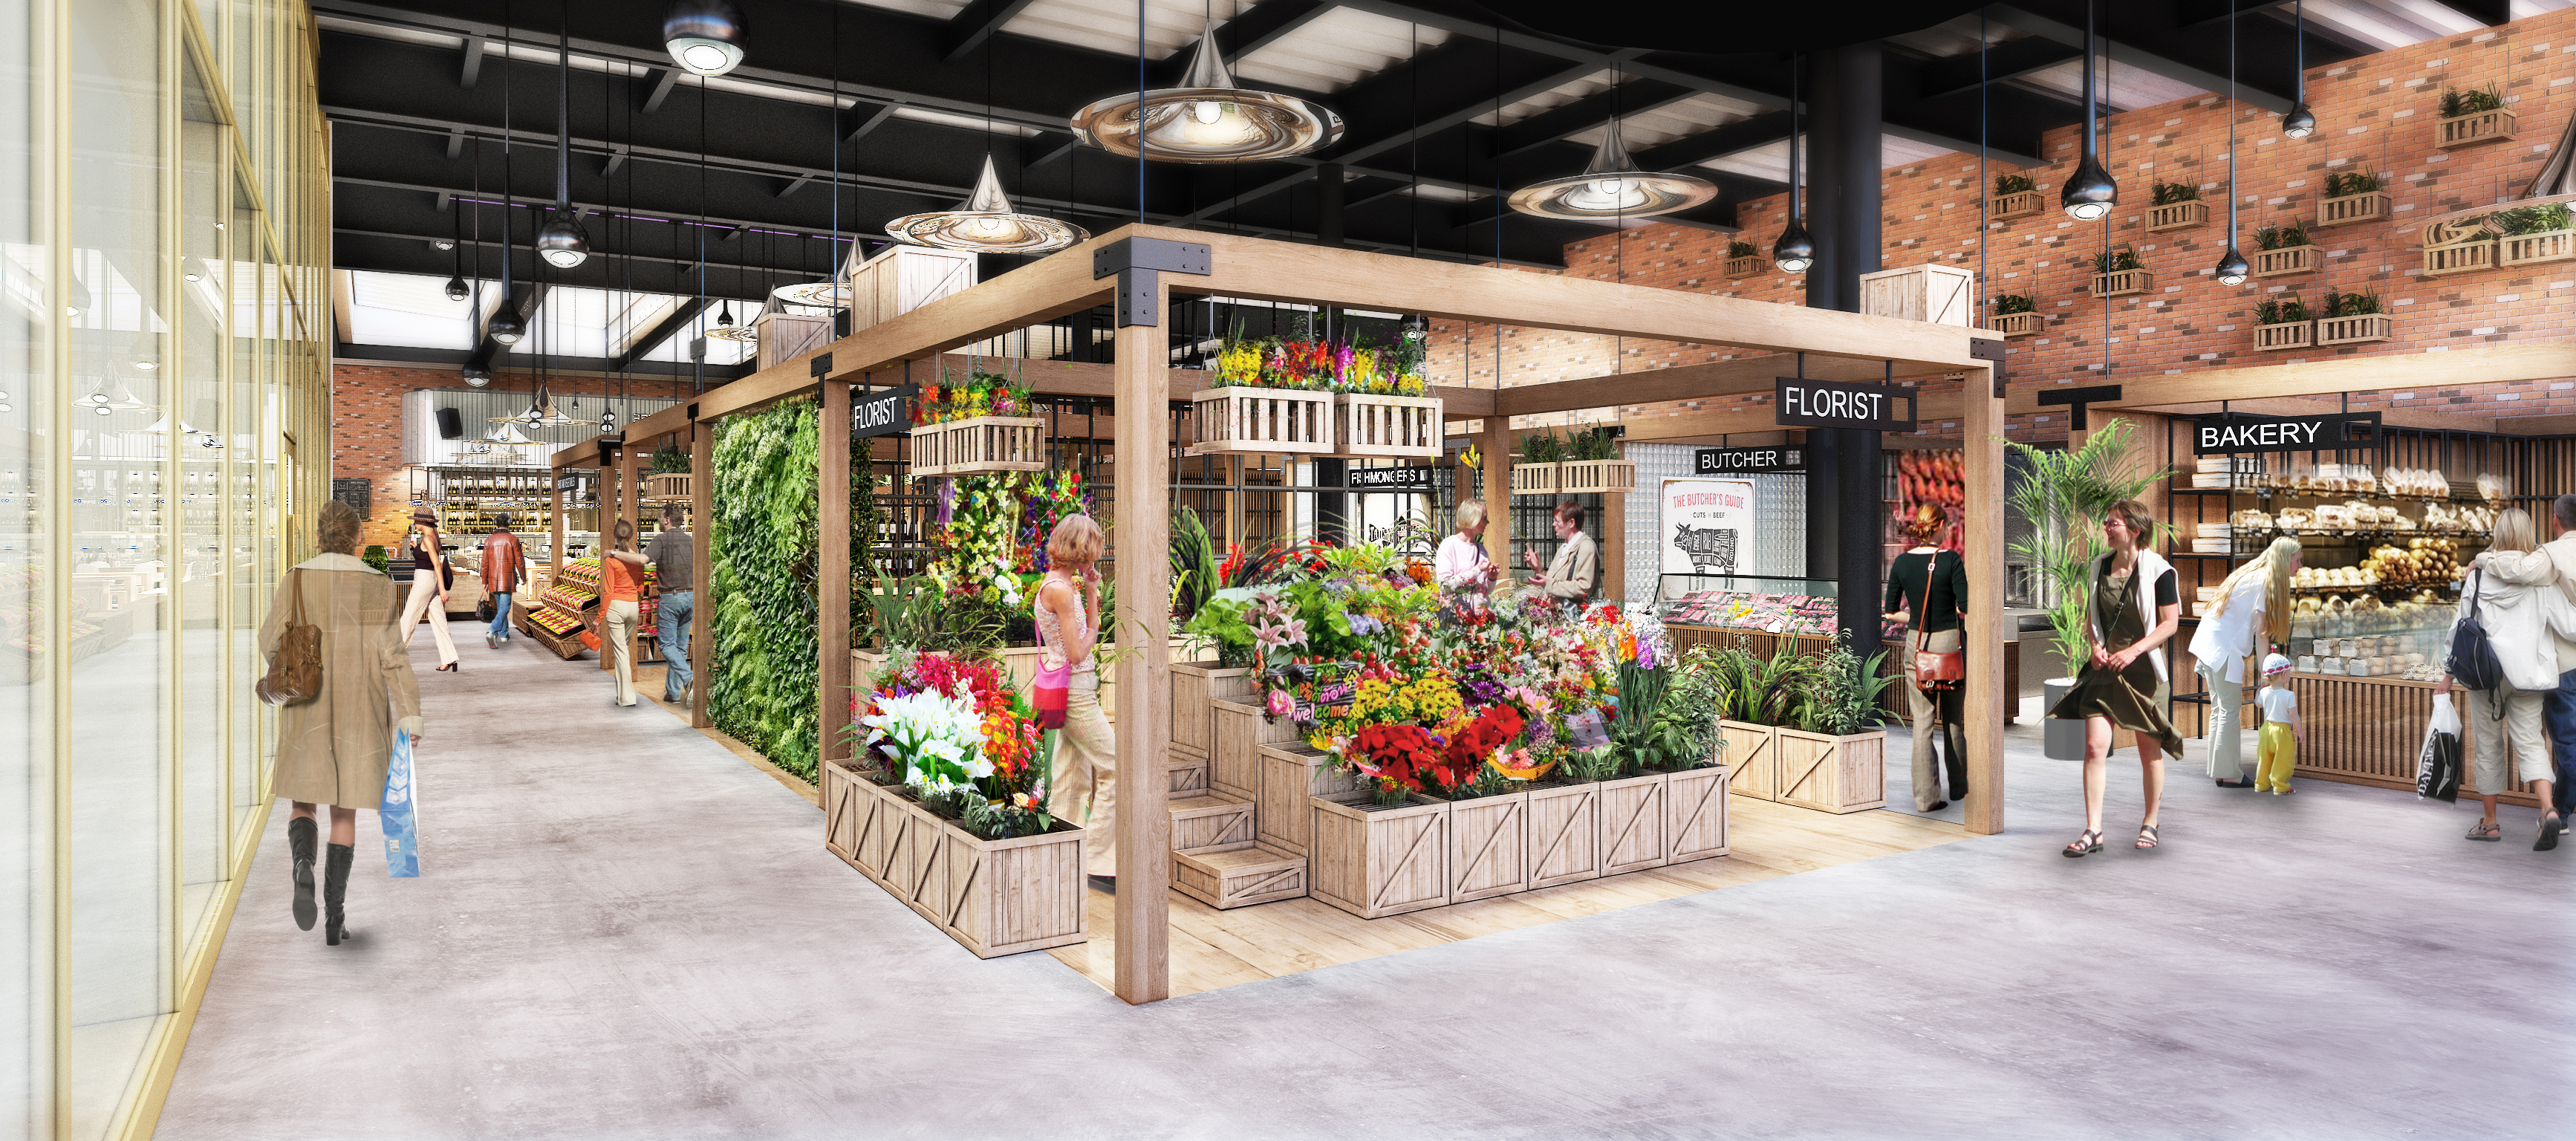 A mock-up of how the new market is expected to look